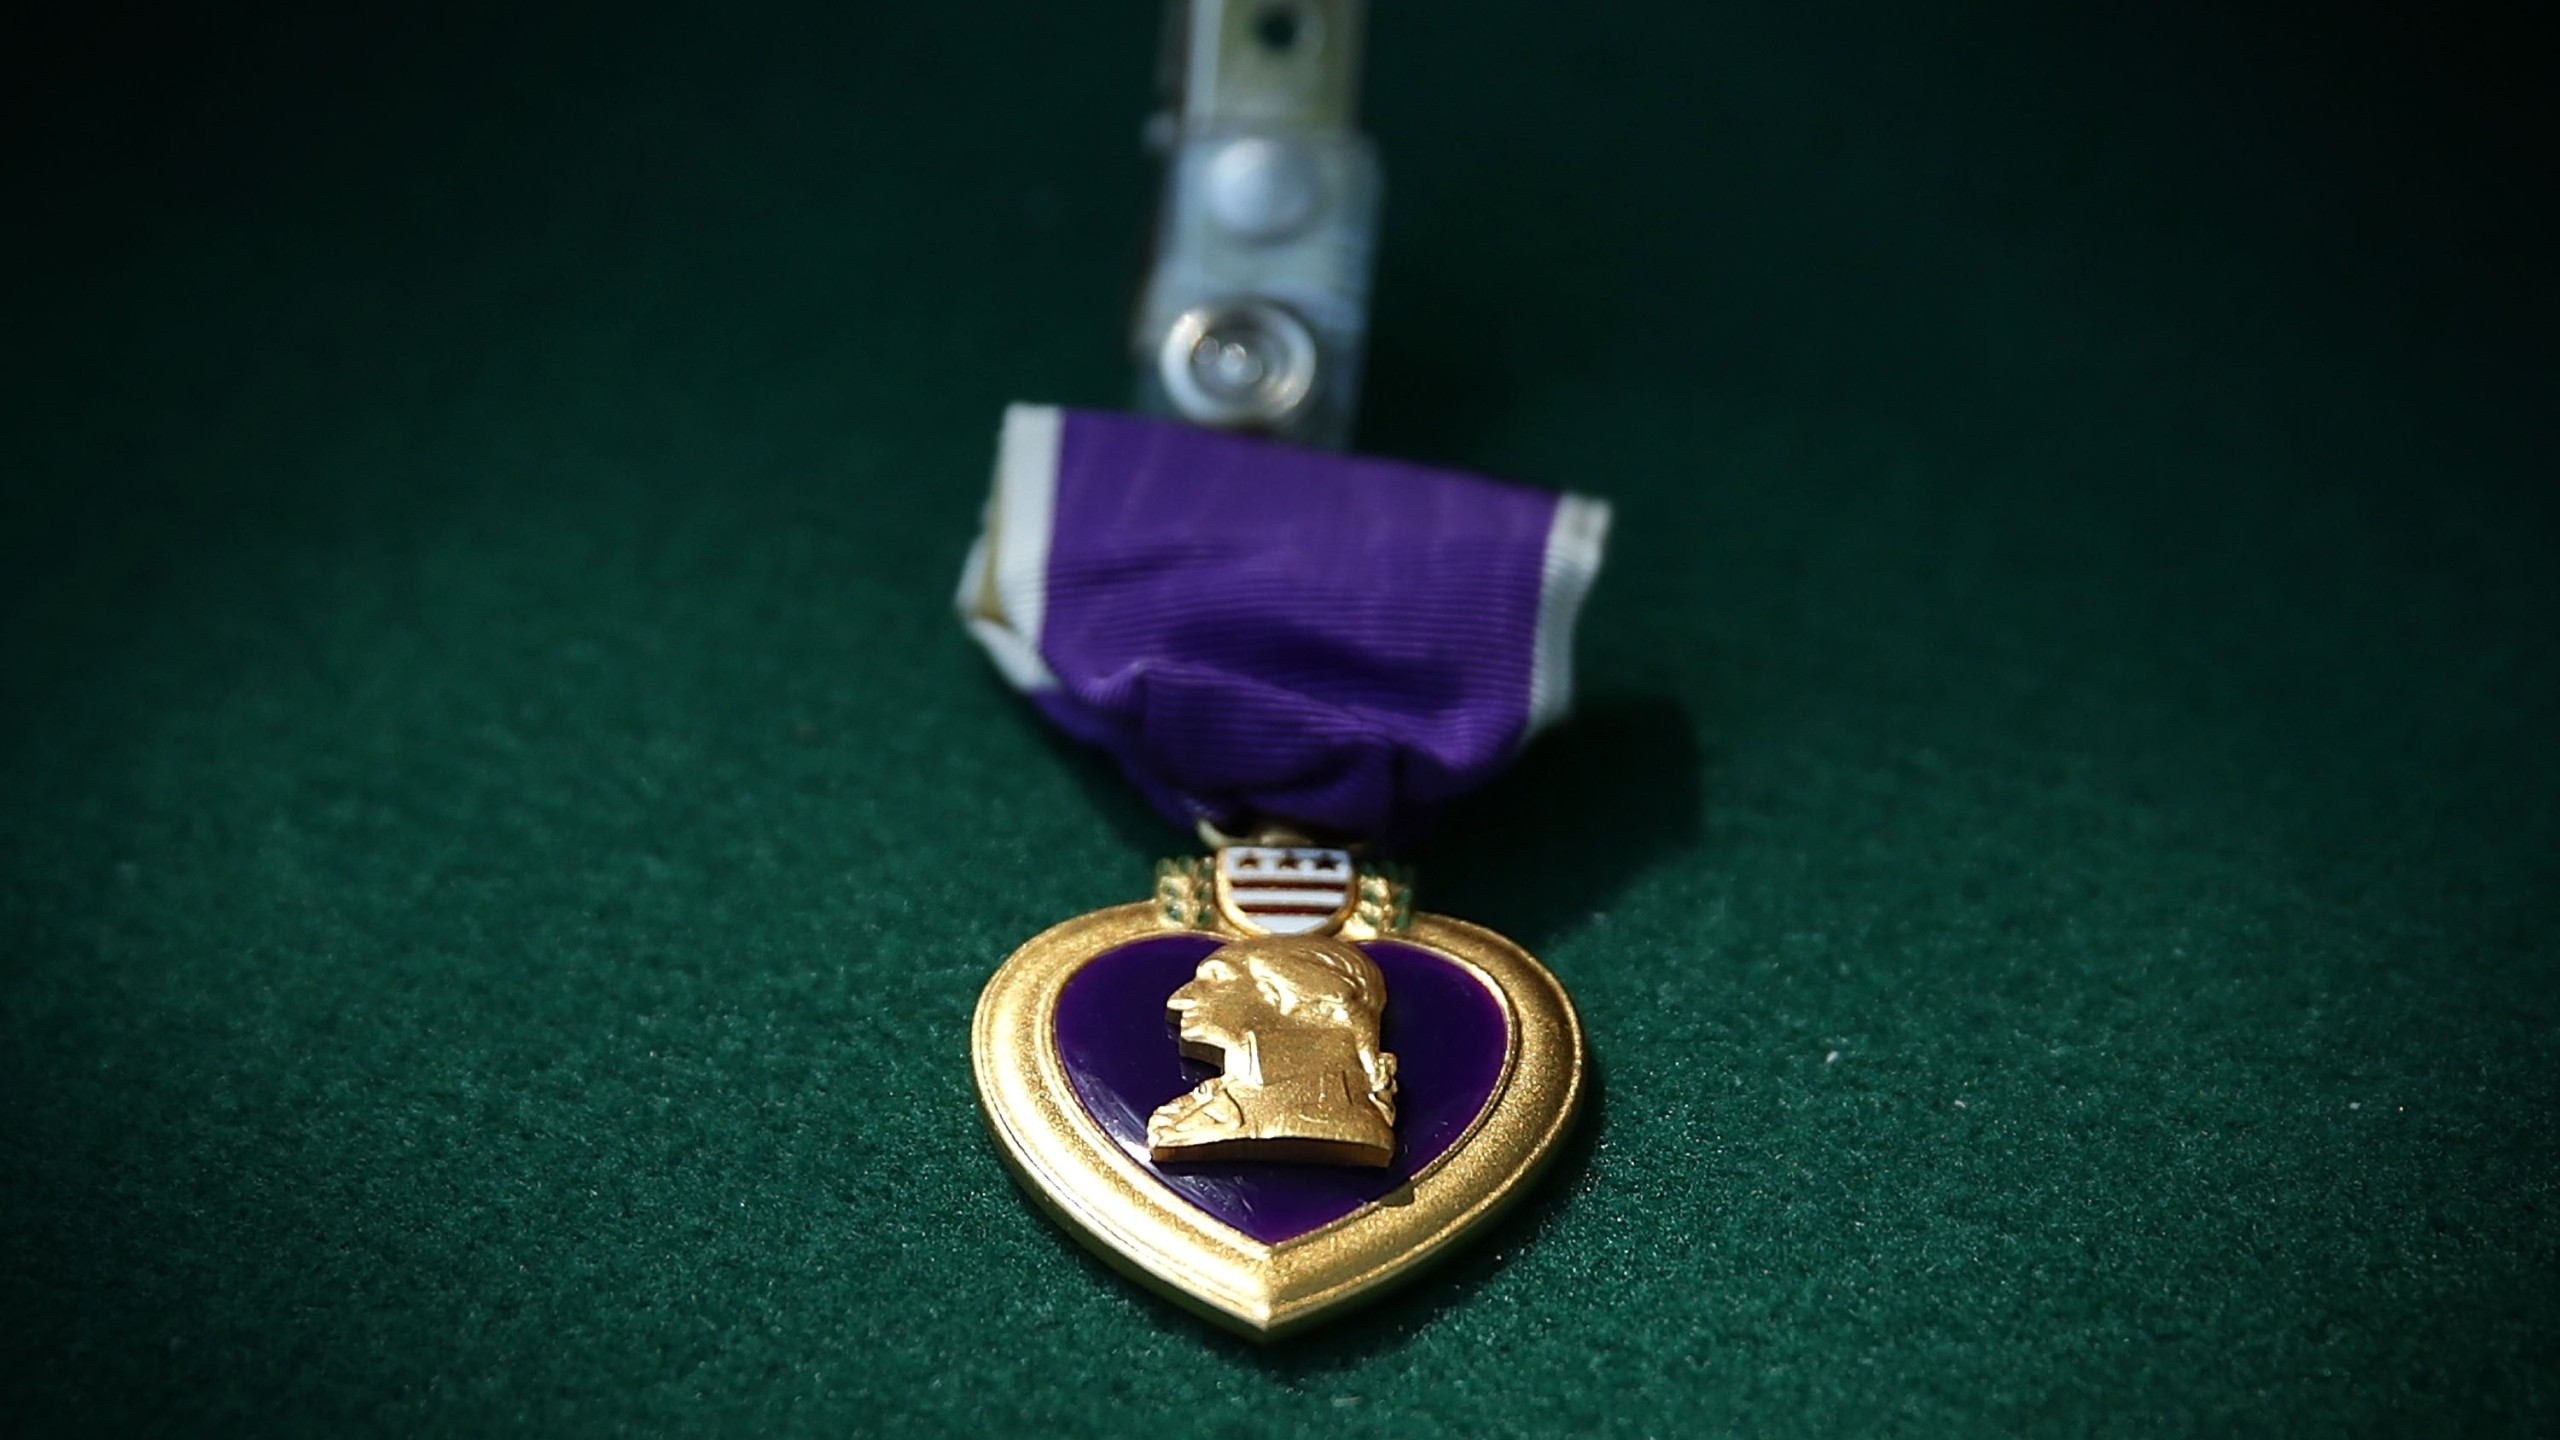 A Purple Heart medal is seen during a Purple Heart ceremony June 9, 2015 at George Washington's Mount Vernon in Mount Vernon, Virginia. (Credit: Alex Wong/Getty Images)